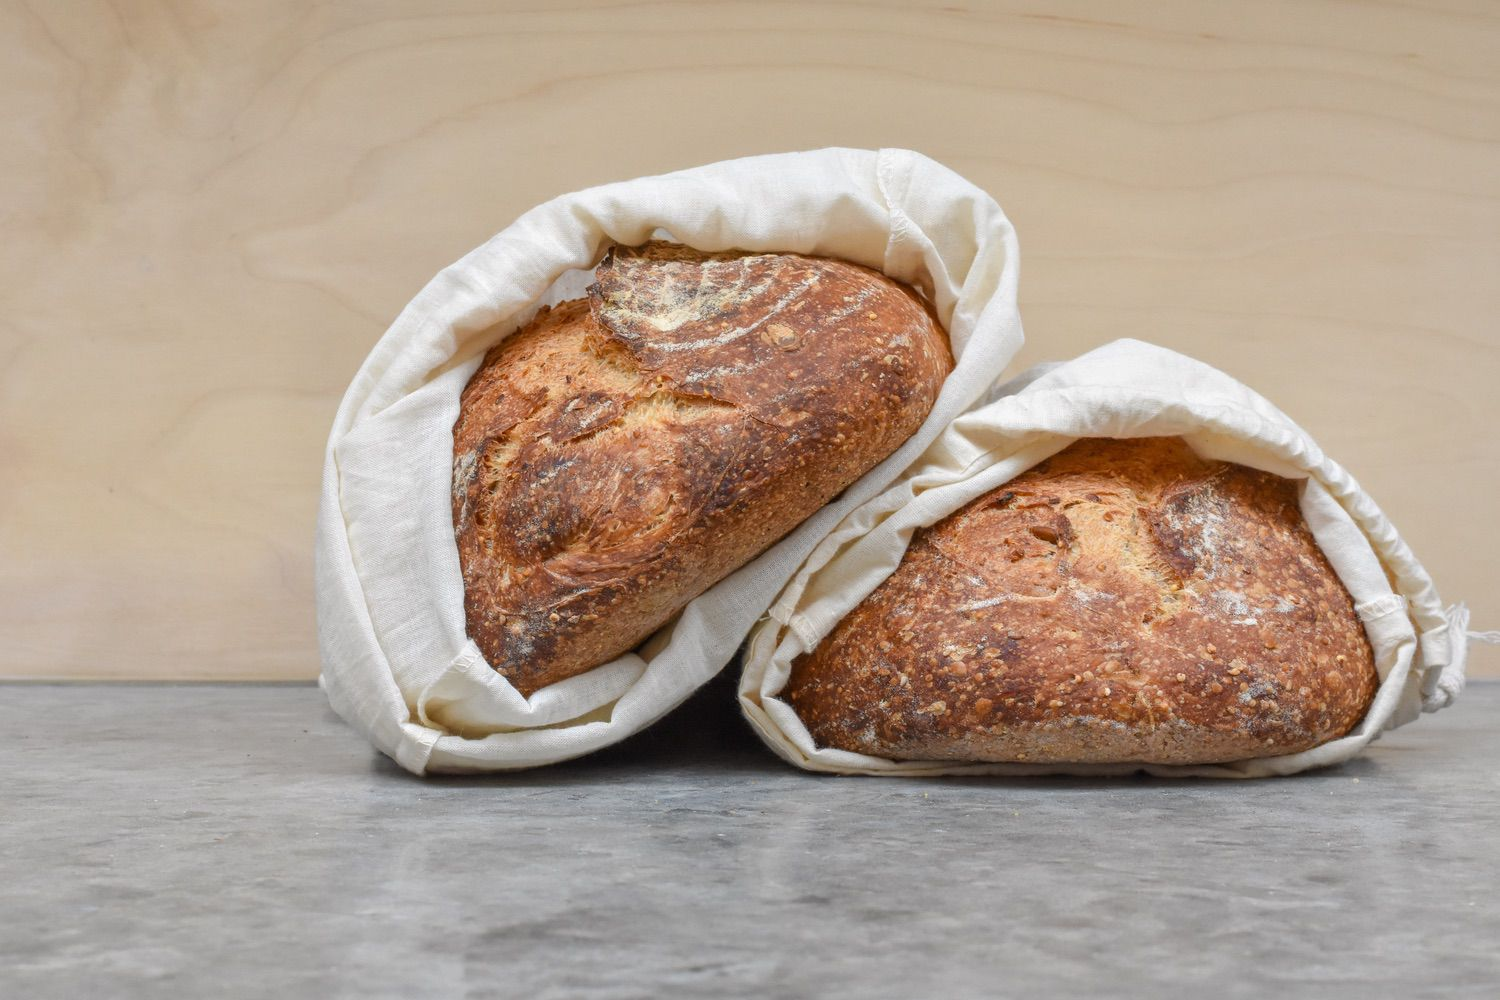 BREAD - The kicker for me was how often I chucked away uneaten sliced bread.The pesky bags would lurk at the back of the cupboard and make a moldy reappearance weeks later. So much plastic. And so much food waste!But really, trying to find a more sustainable loaf has mostly just been an excuse to only buy delicious sourdough bread from Brick House Bakery. The trick is the planning. I stock-up every other week and freeze the loaves in halves, or sliced, for a constant supply of the freshest bread for toast. Zero packaging. Zero food-waste. Maximum bread love. Win.As the BBC would say, 'other local bakeries are available'.